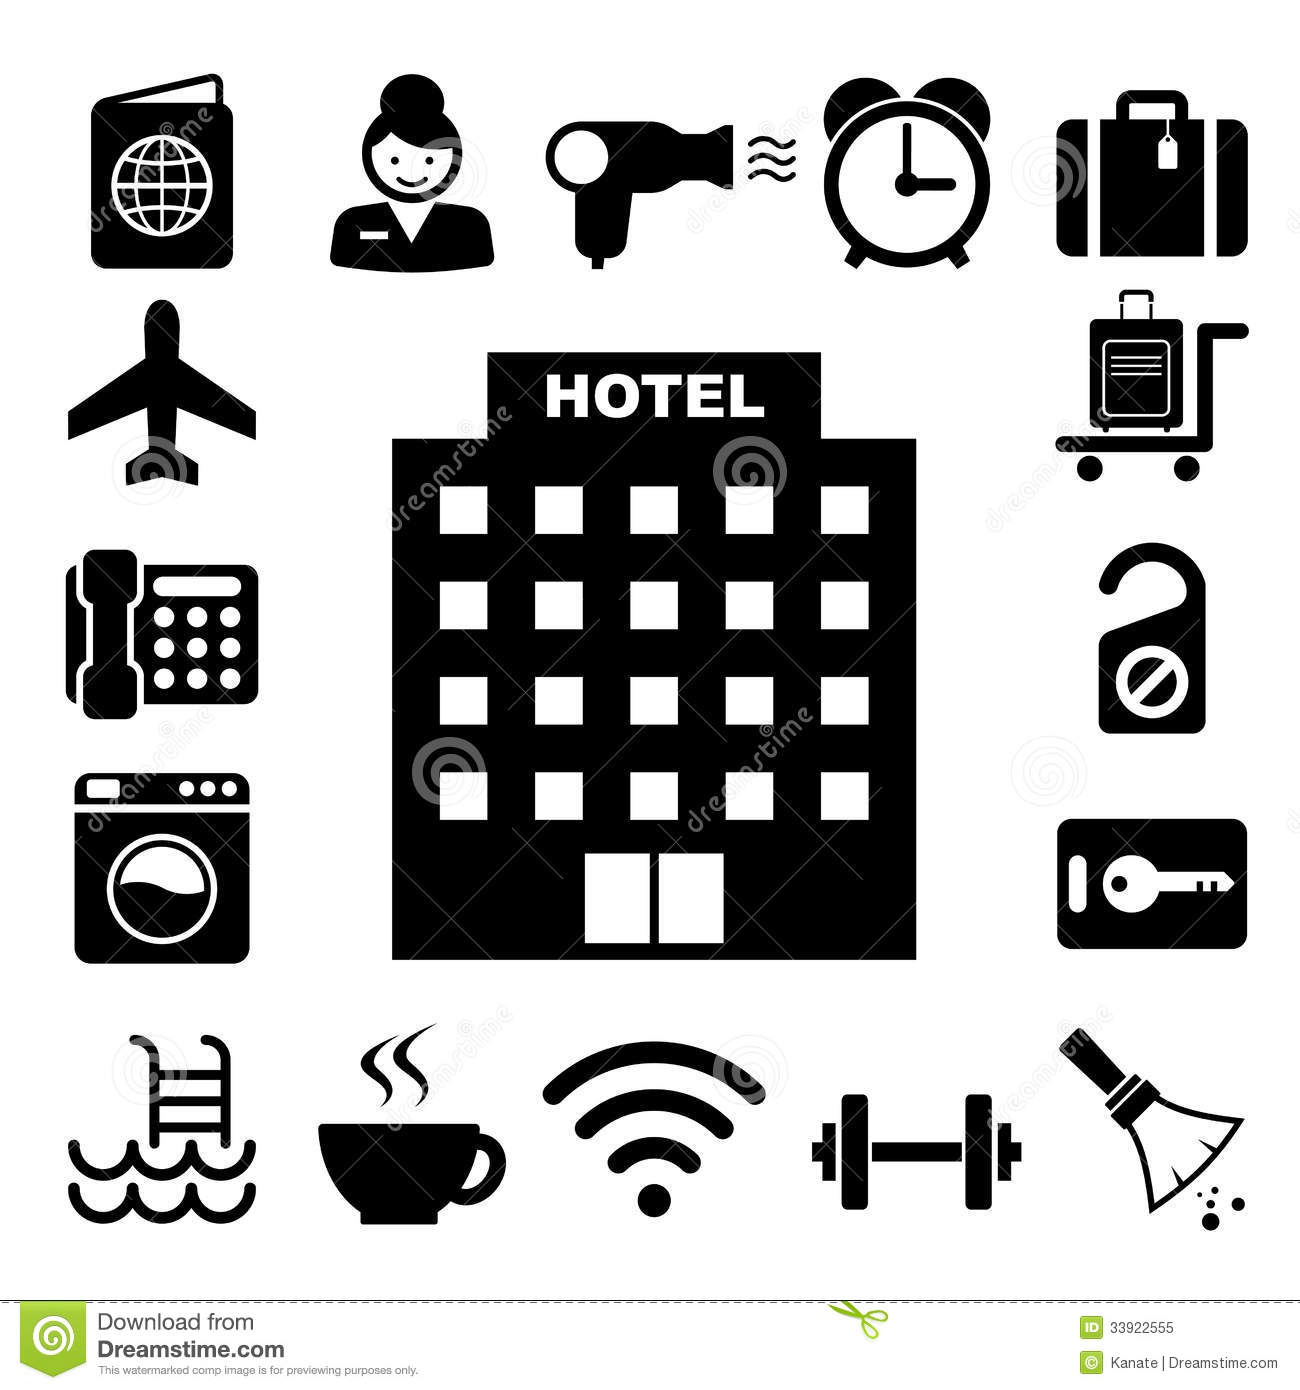 Hotel Icons Clipart | www.pixshark.com - Images Galleries ...